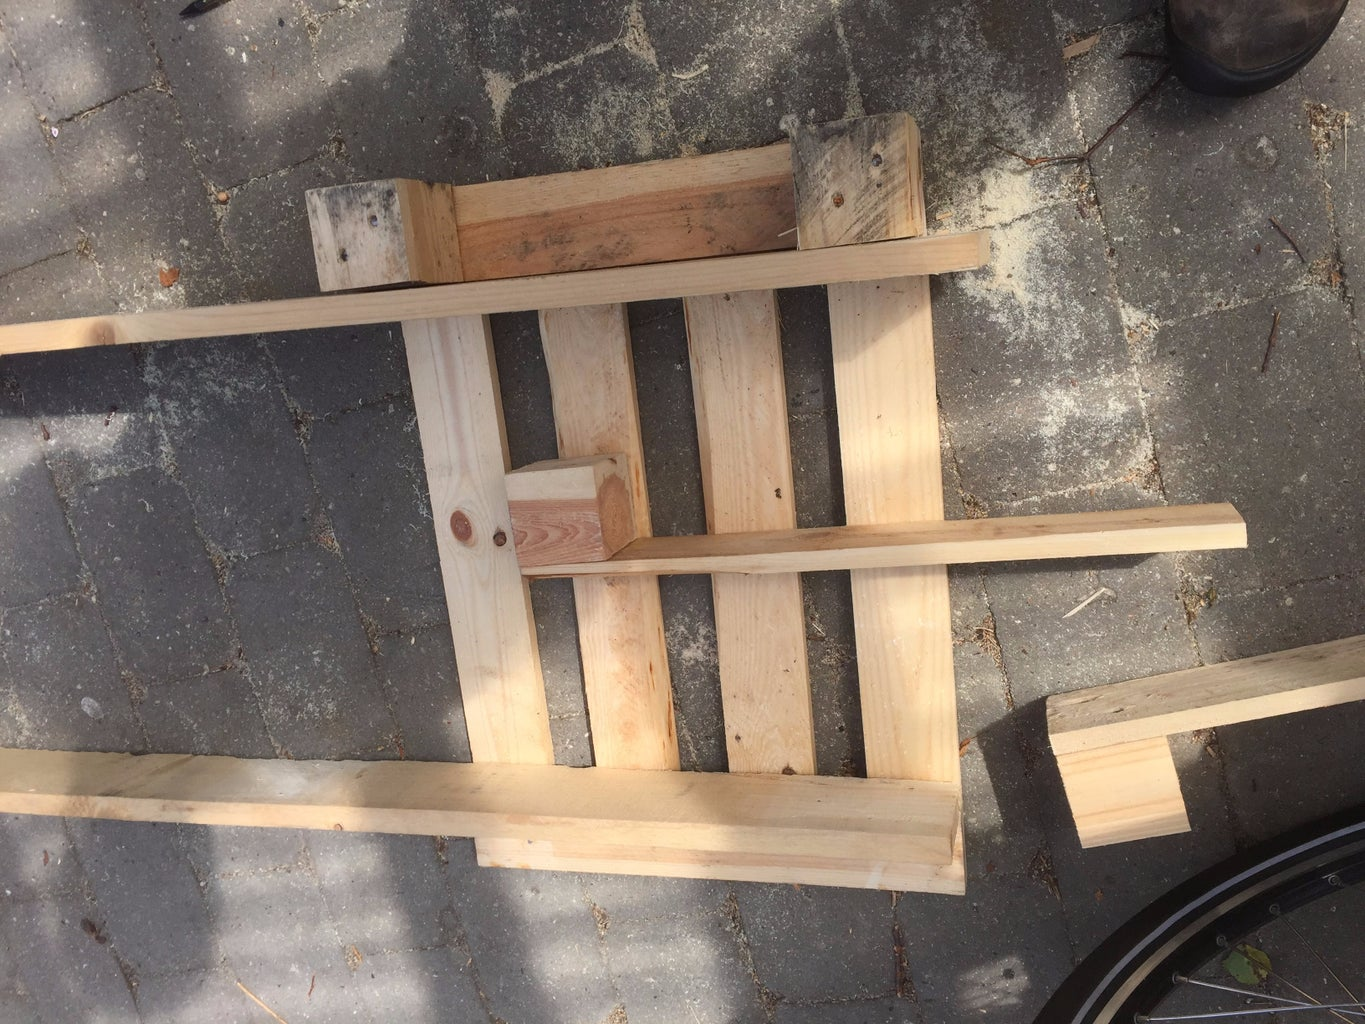 Cut Up a Small Pallet